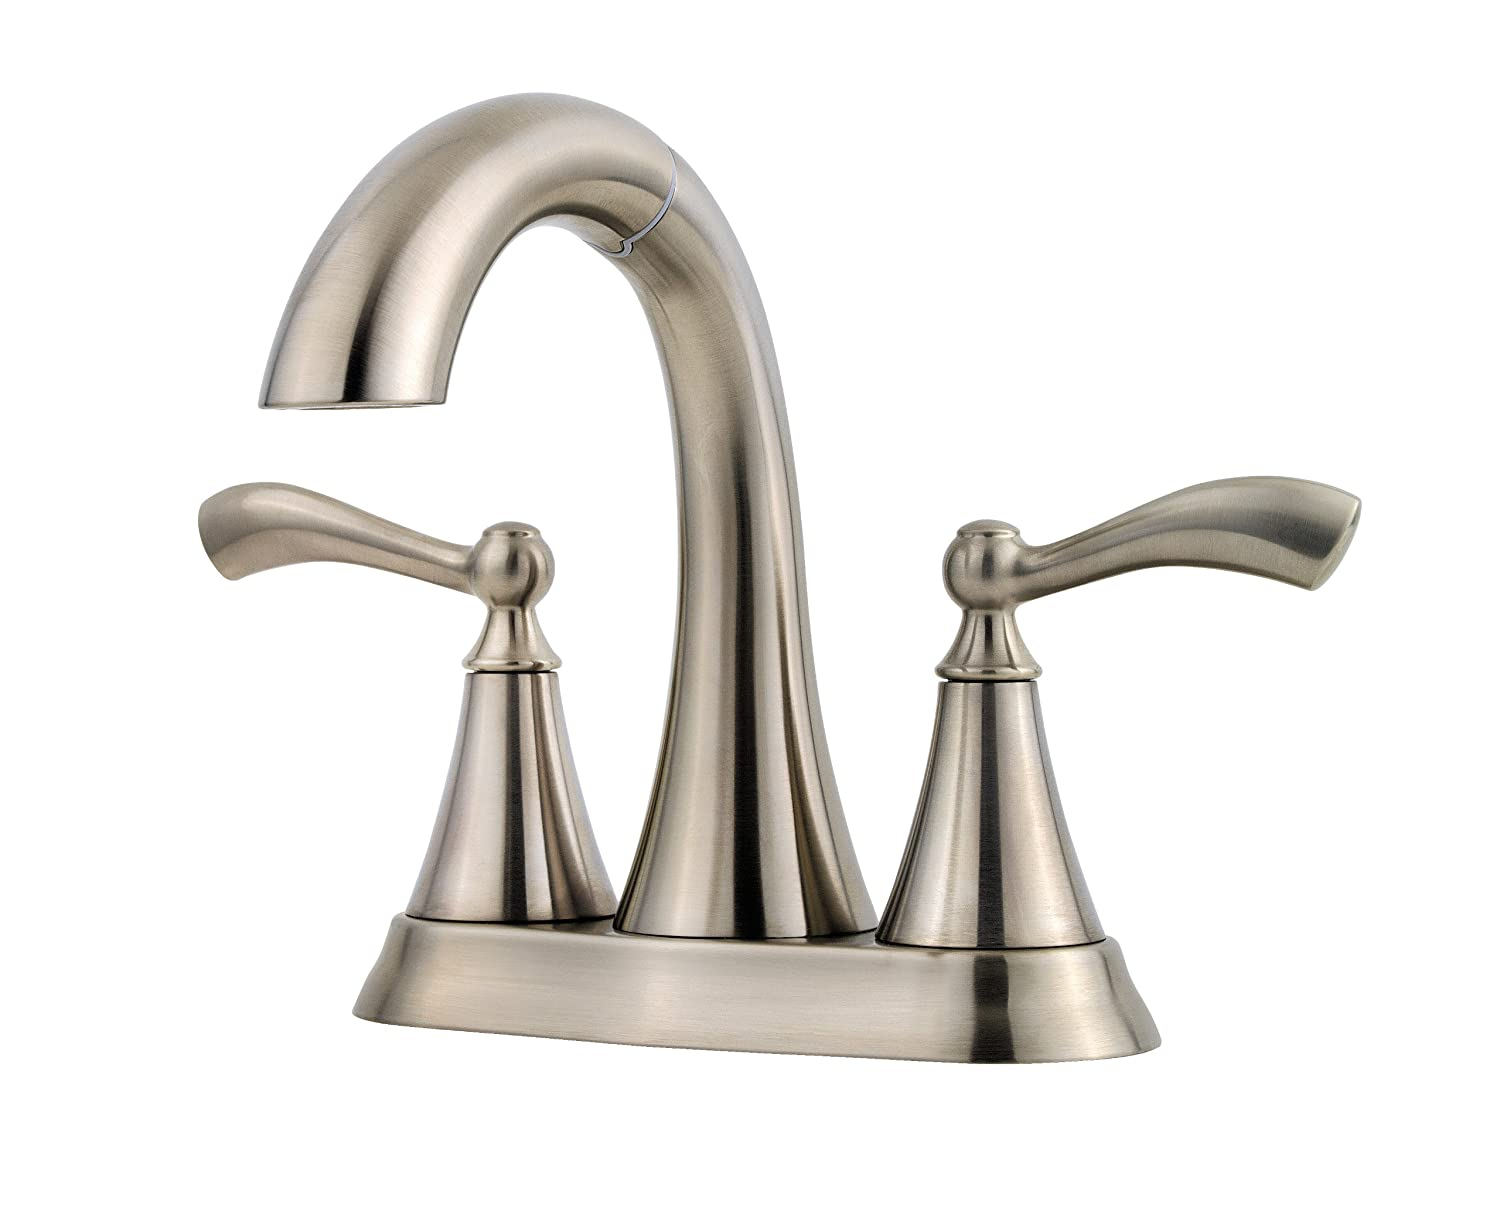 size large fishingforcatfish info brushed home price handle defense spot faucet single interior pfister recent designs theme faucets of nickel sink bathroom with